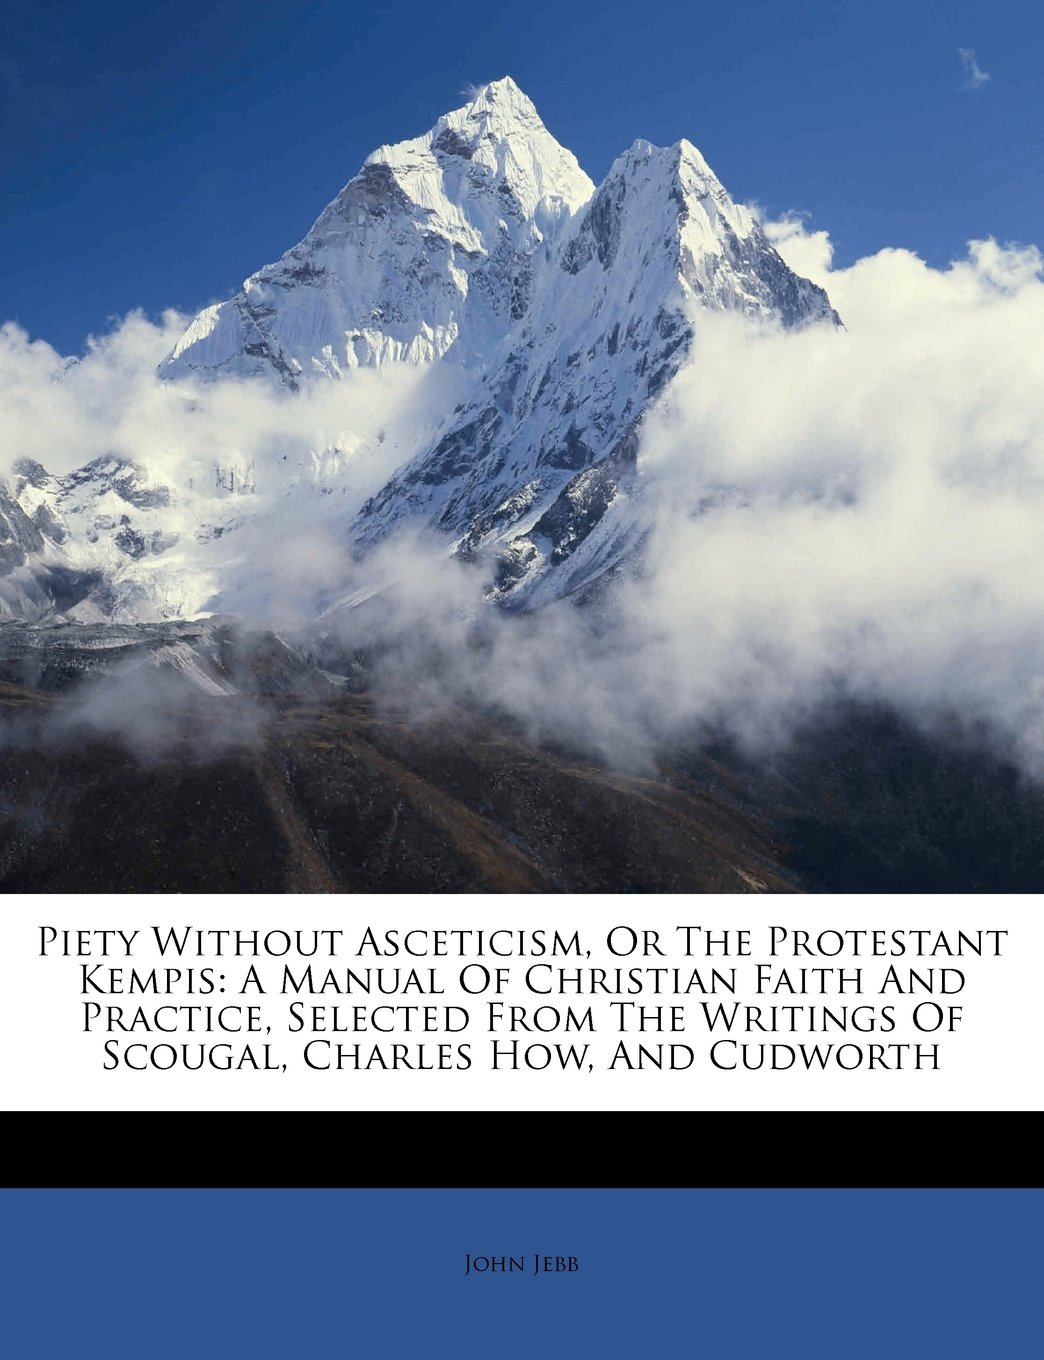 Download Piety Without Asceticism, Or The Protestant Kempis: A Manual Of Christian Faith And Practice, Selected From The Writings Of Scougal, Charles How, And Cudworth PDF